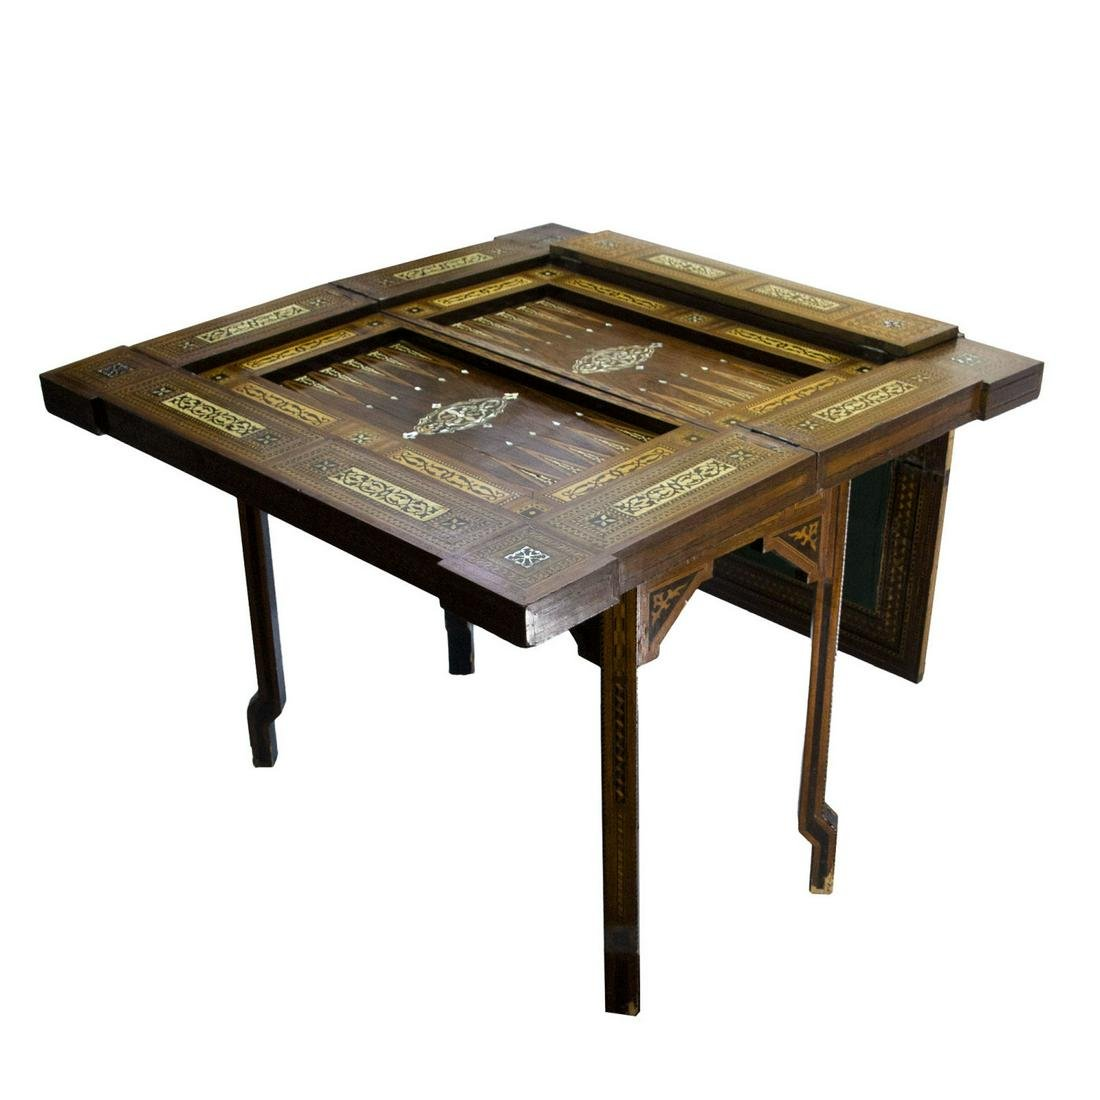 Magnificent Moroccan Antique Inlaid Game Table.